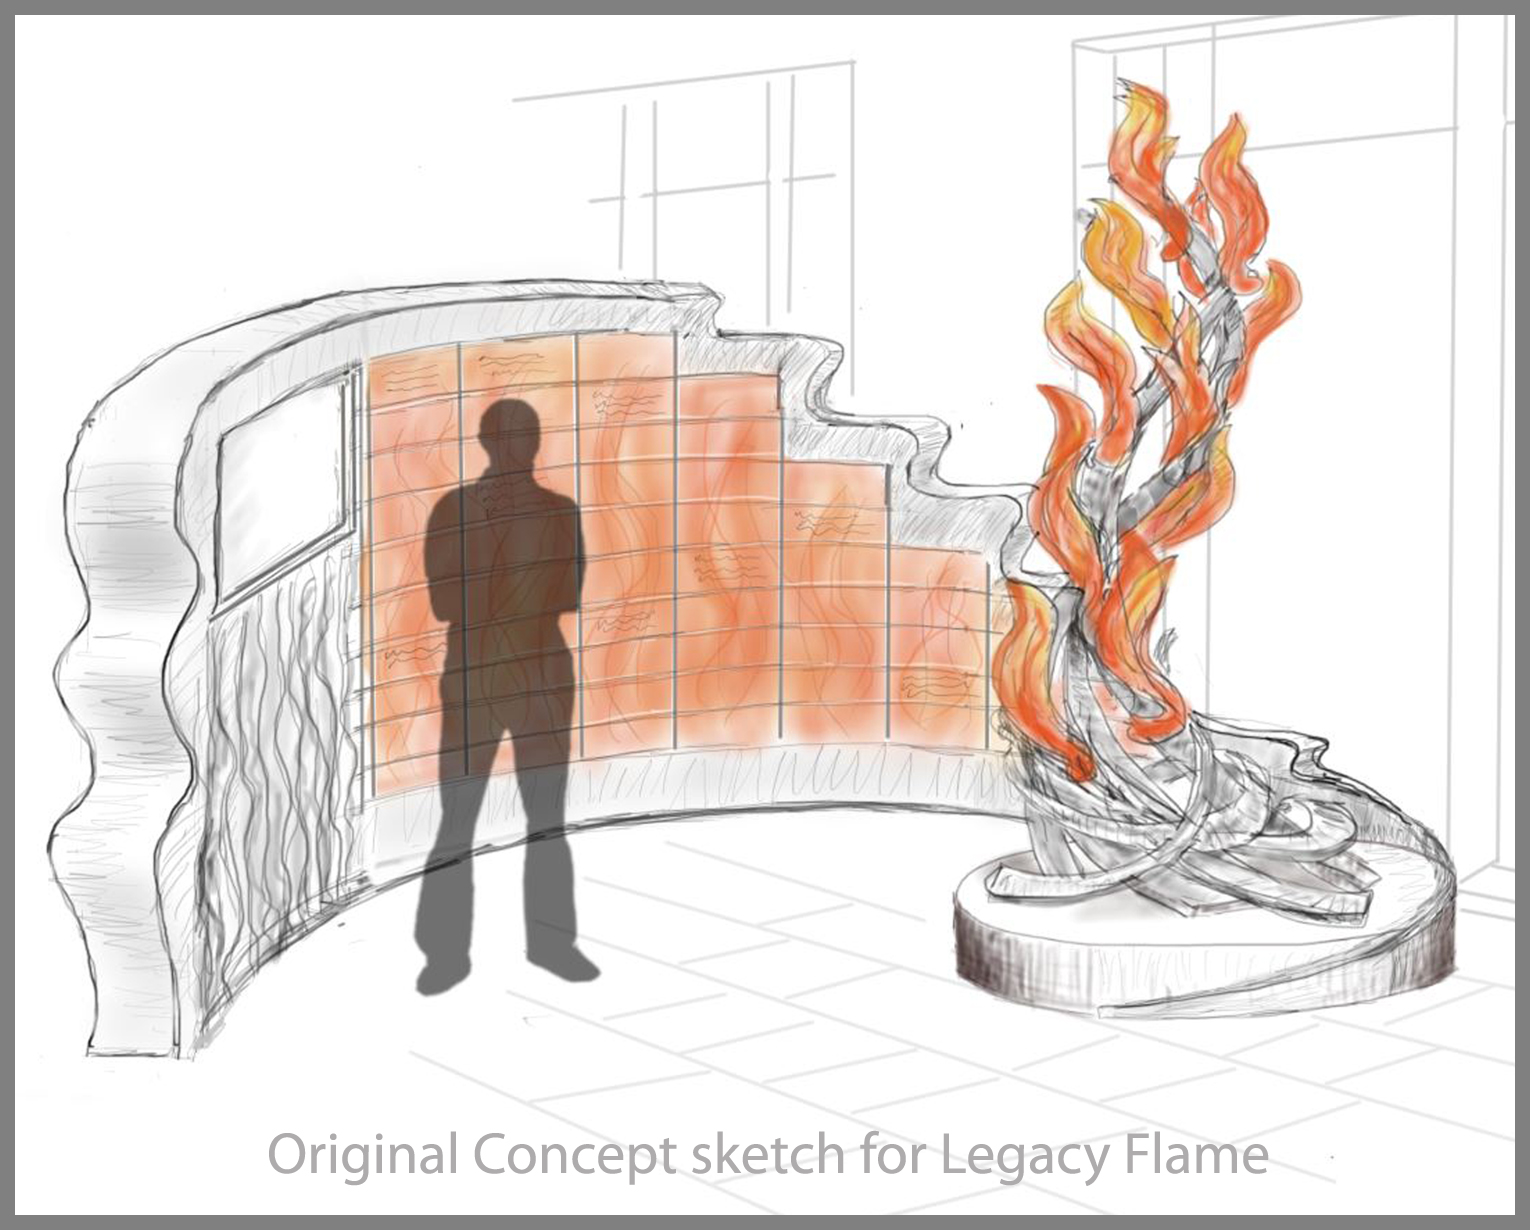 The Legacy Flame